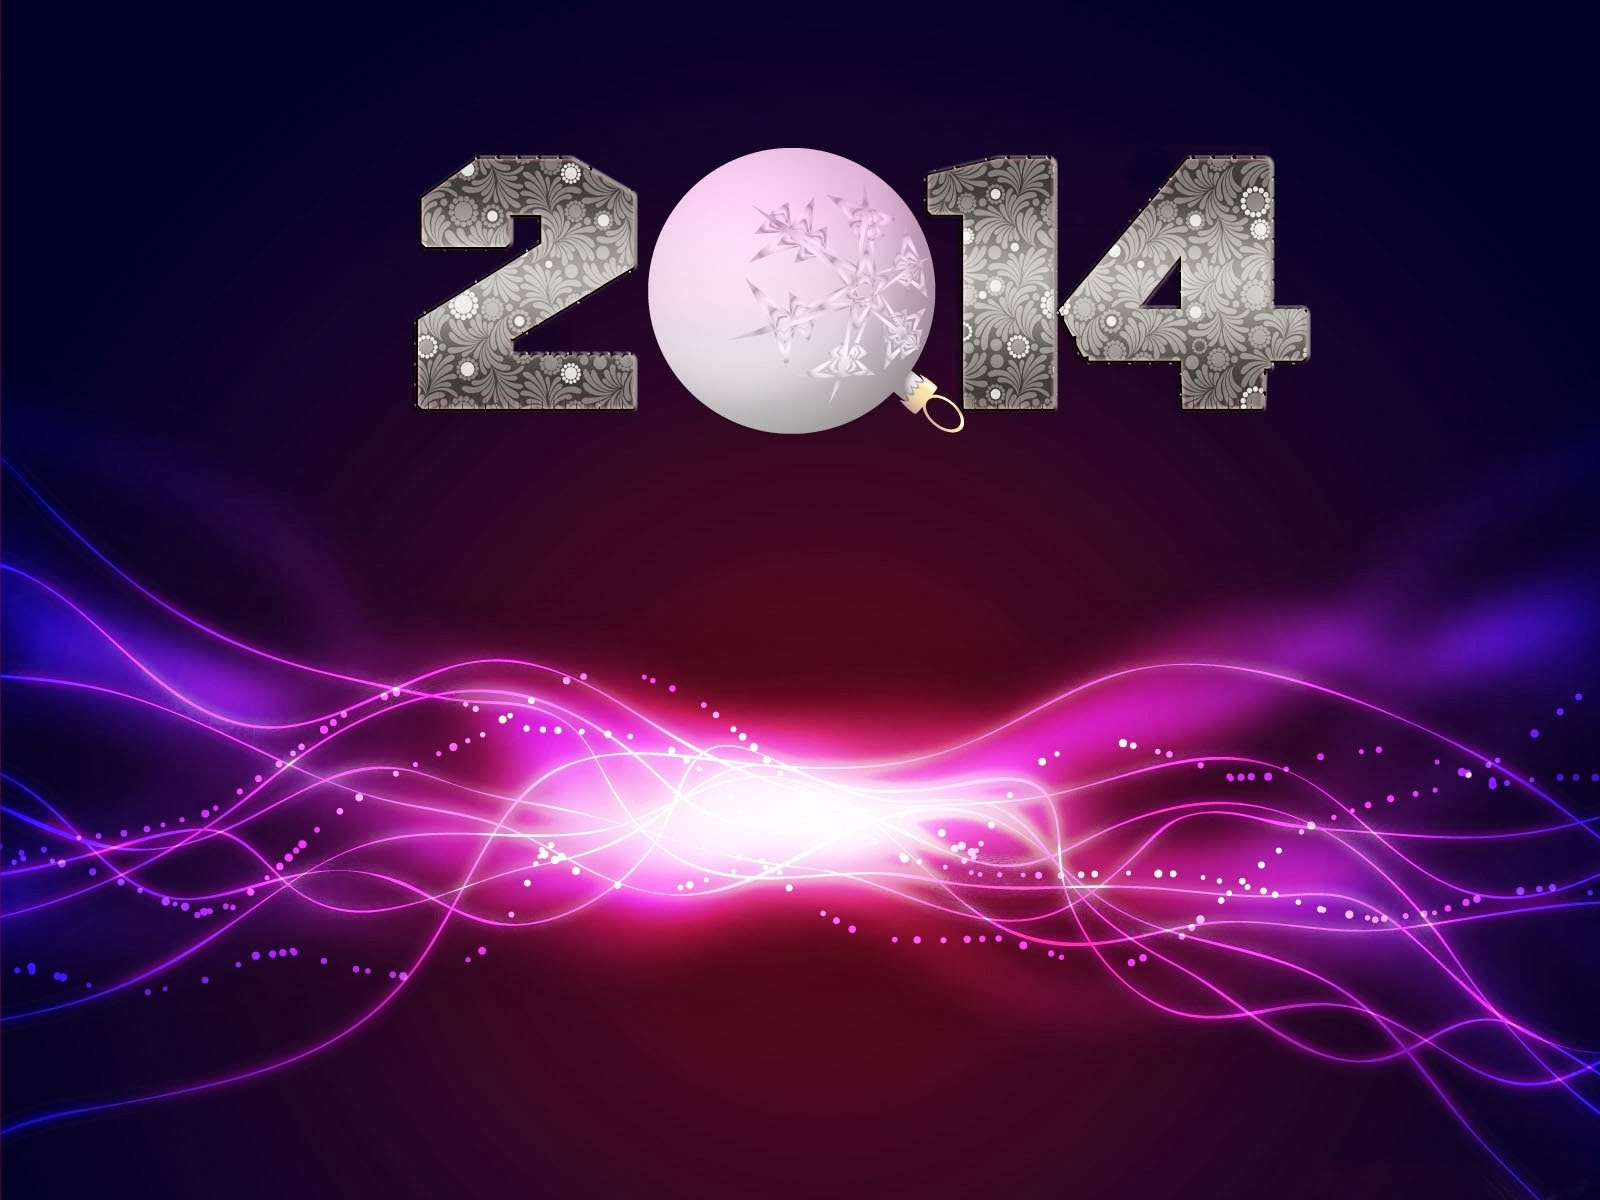 2014 Happy New Year Greetings.5 New Year Greeting Cards Samples 2014